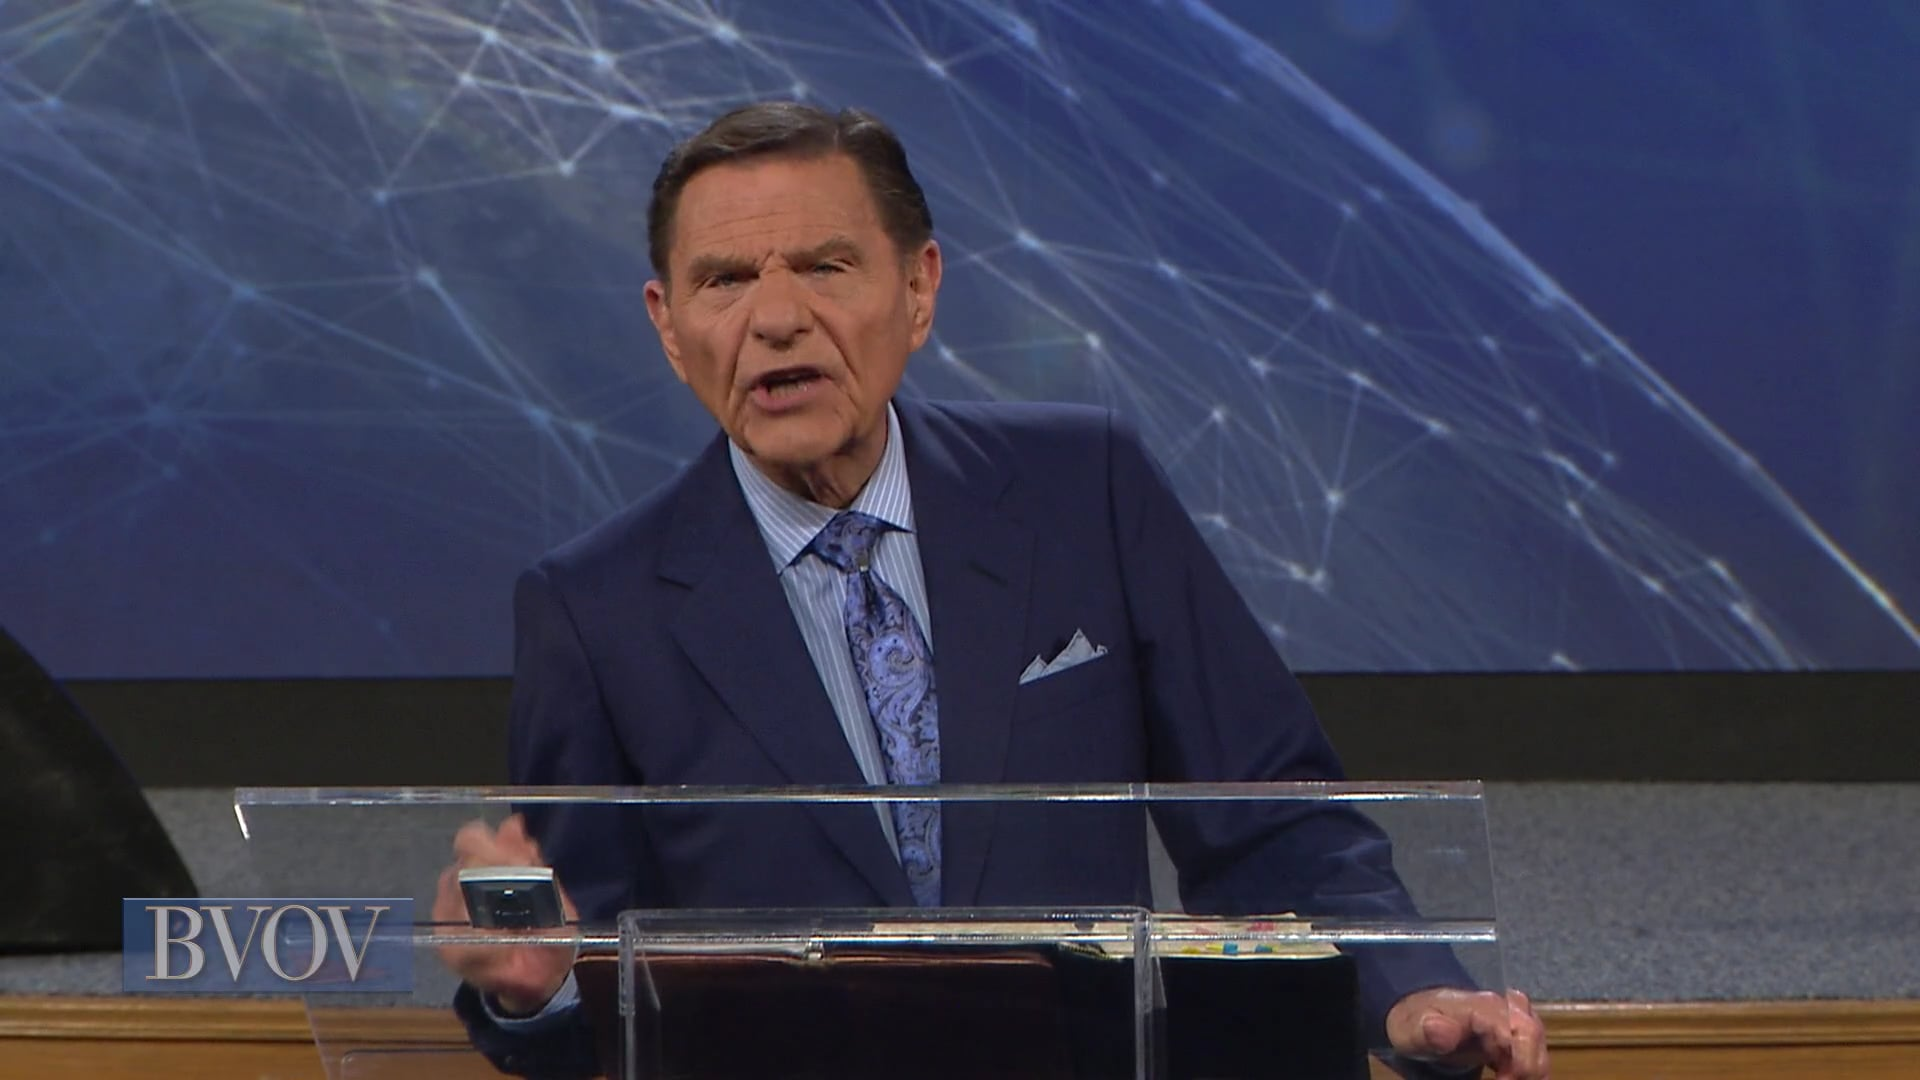 Where there is strife, there is confusion and every evil work. Today, on Believer's Voice of Victory, Kenneth Copeland teaches you how to take your stand on The WORD of God and bring peace and unity to your home, city and nation. God is greater than the strife.